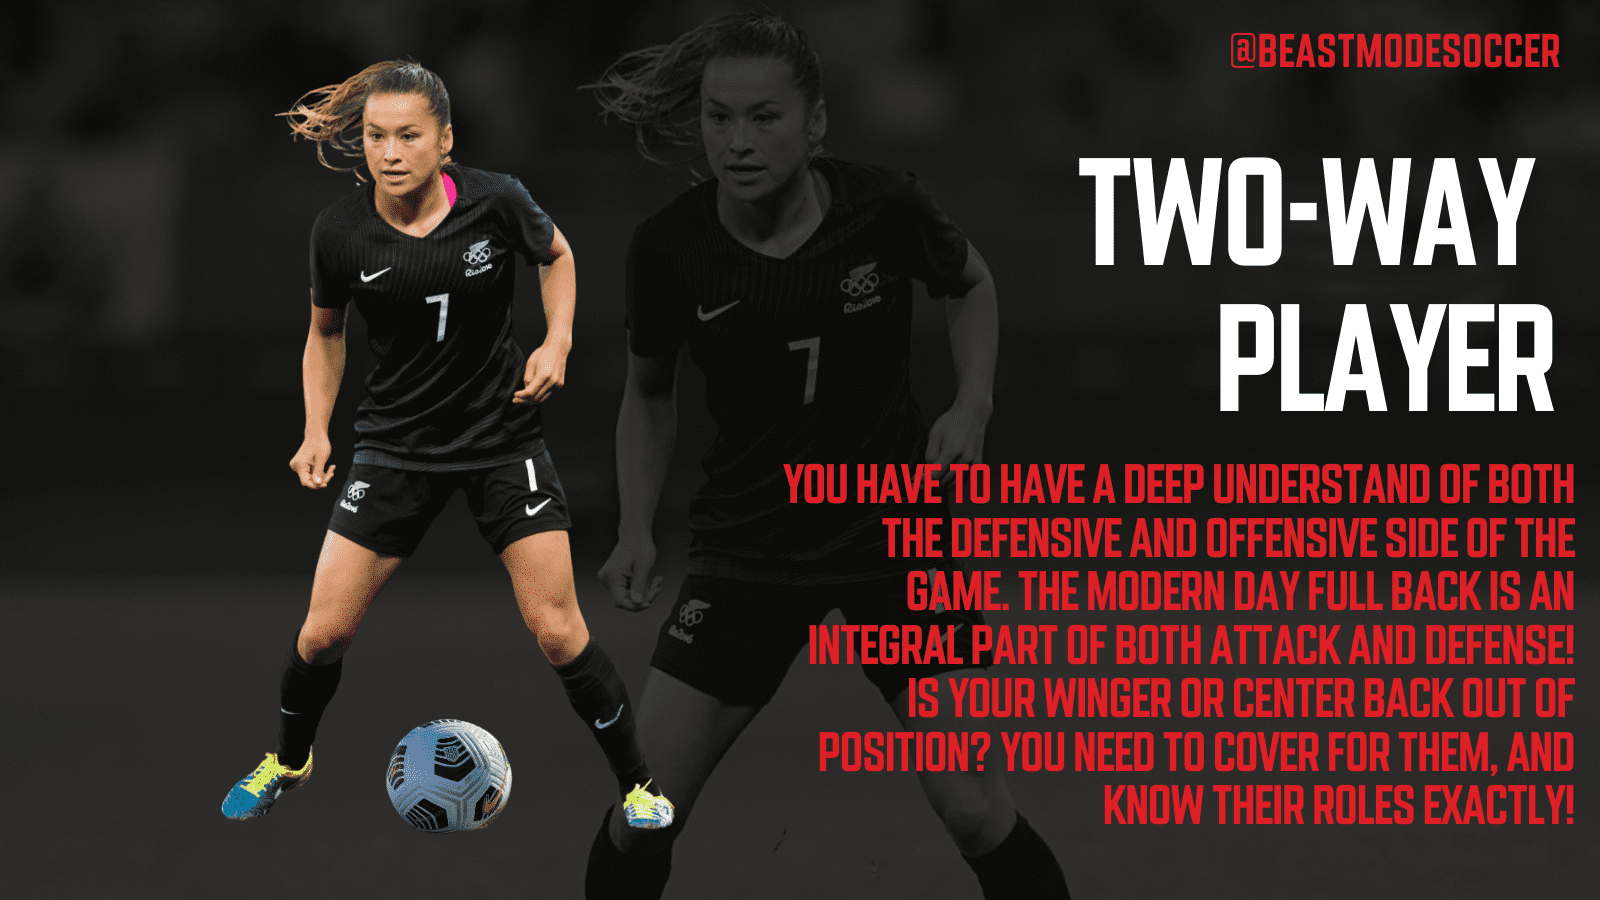 Become a Two Way Player in soccer